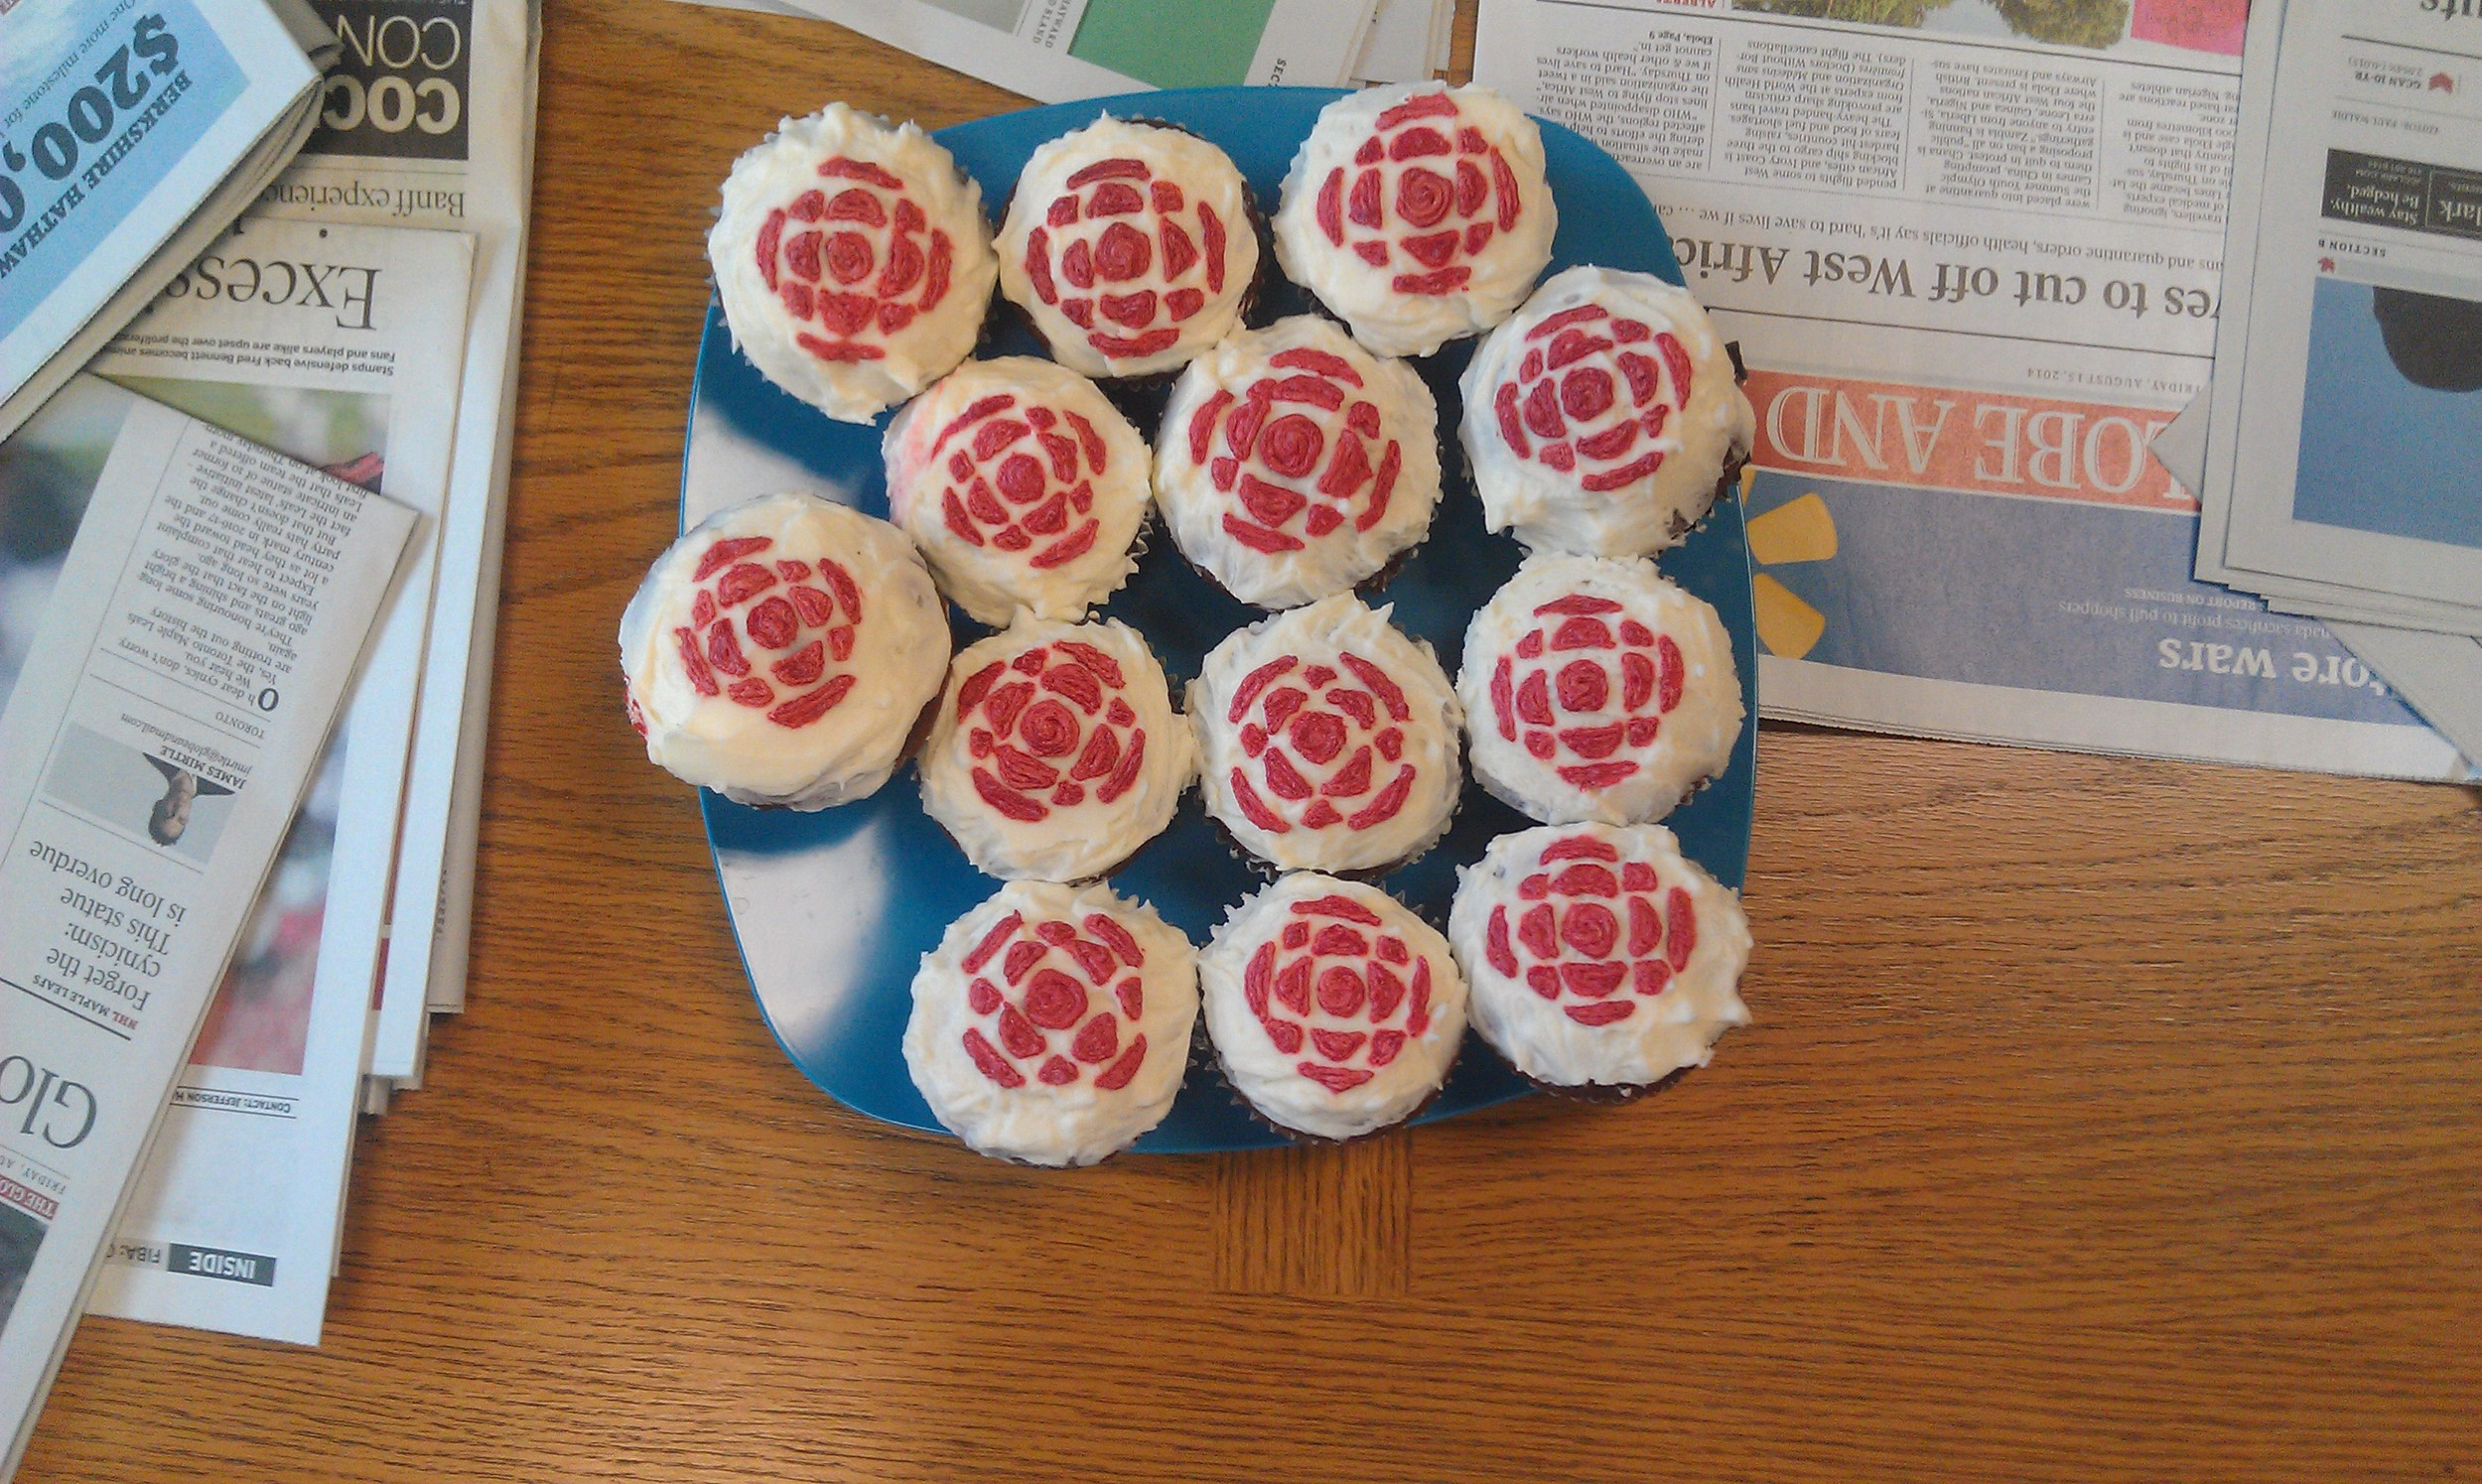 Some farewell cupcakes!